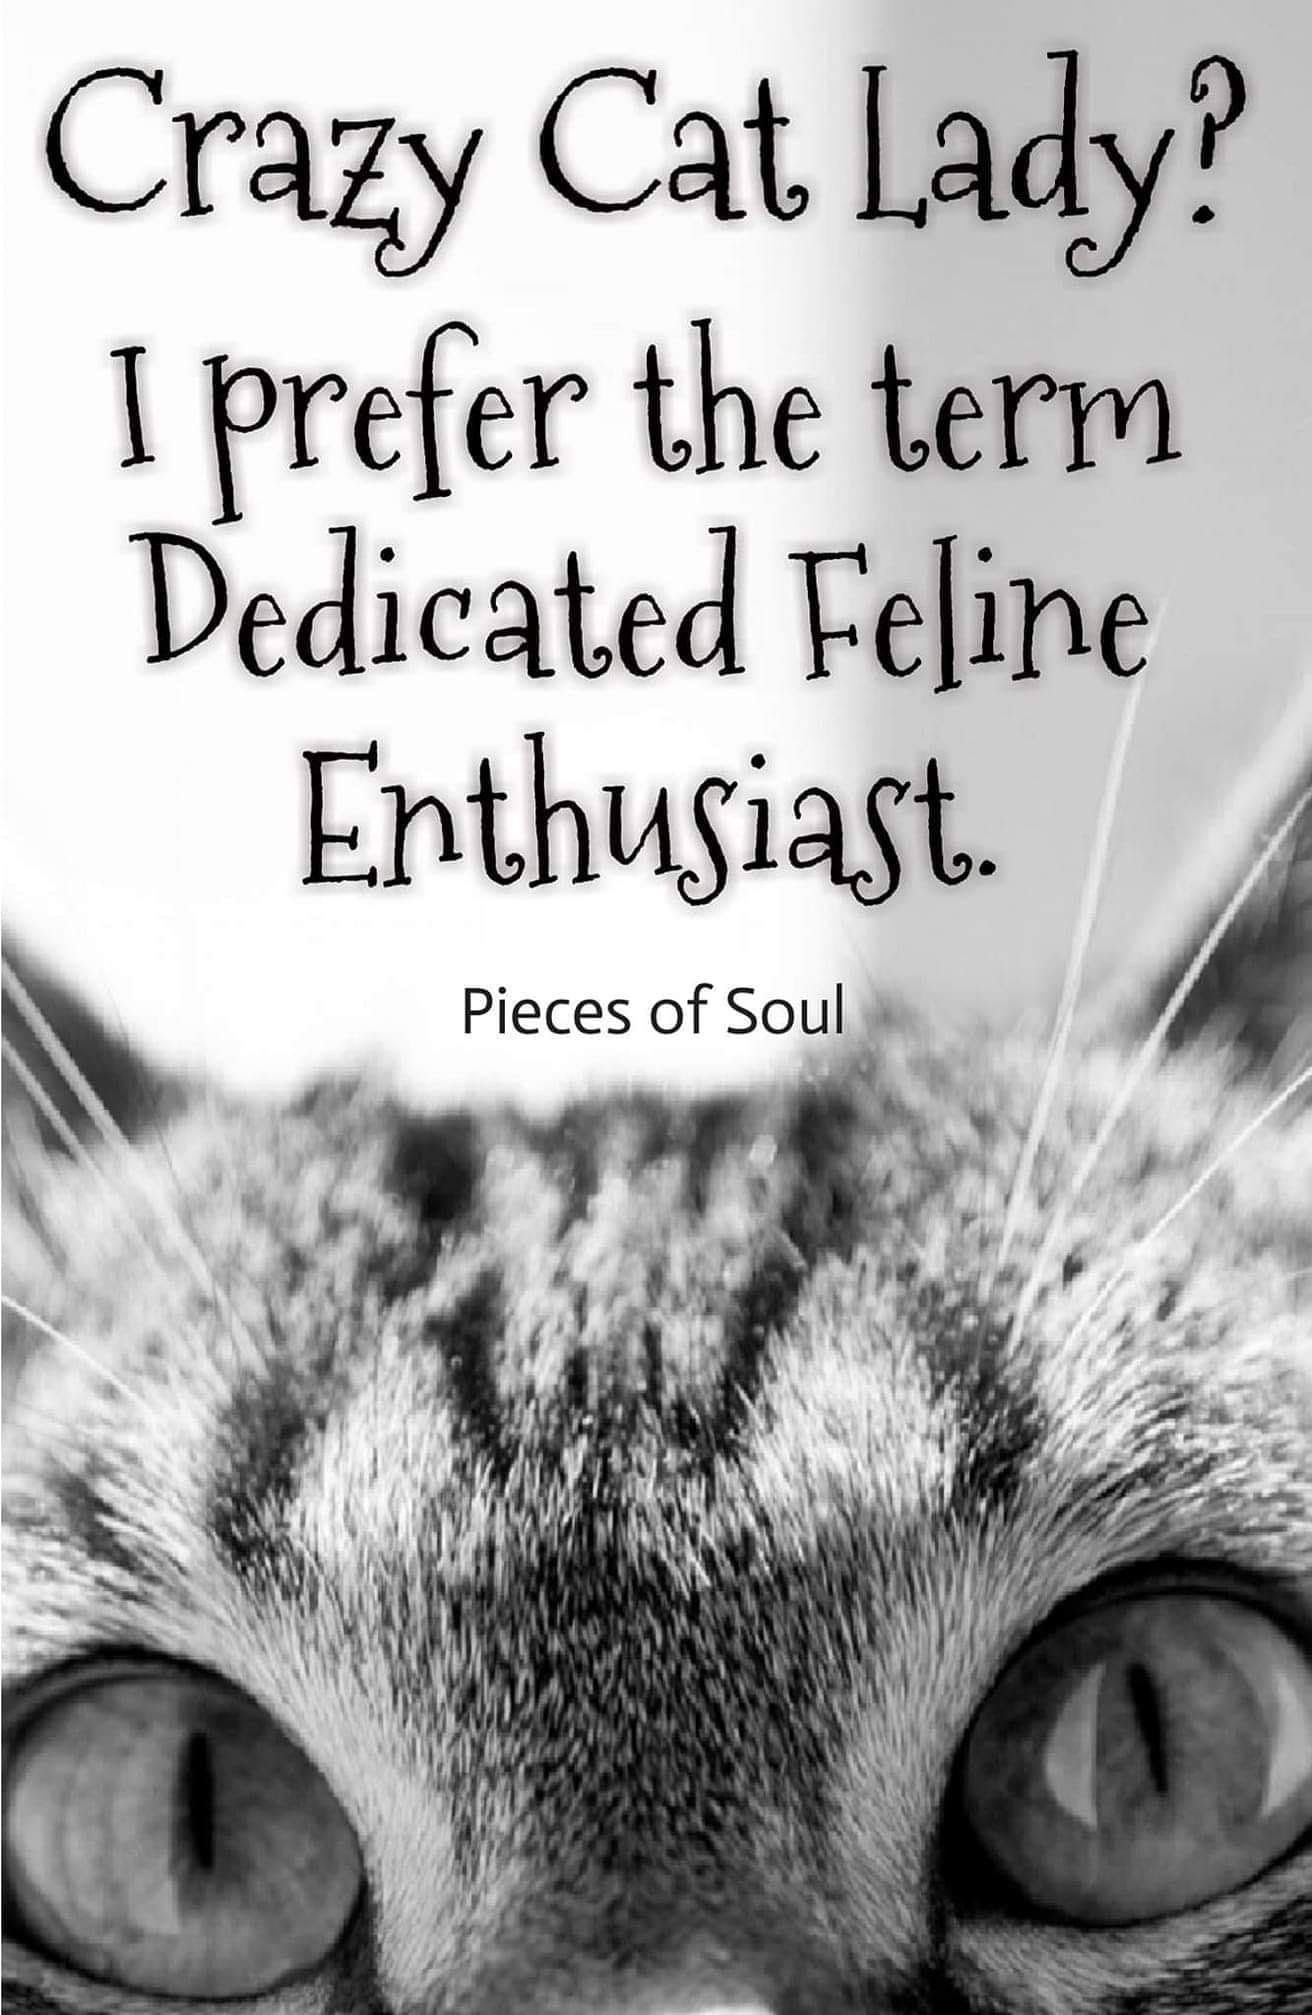 Pin By Stephanie Medina On Animal Love In 2020 Crazy Cats Silly Cats Crazy Cat Lady